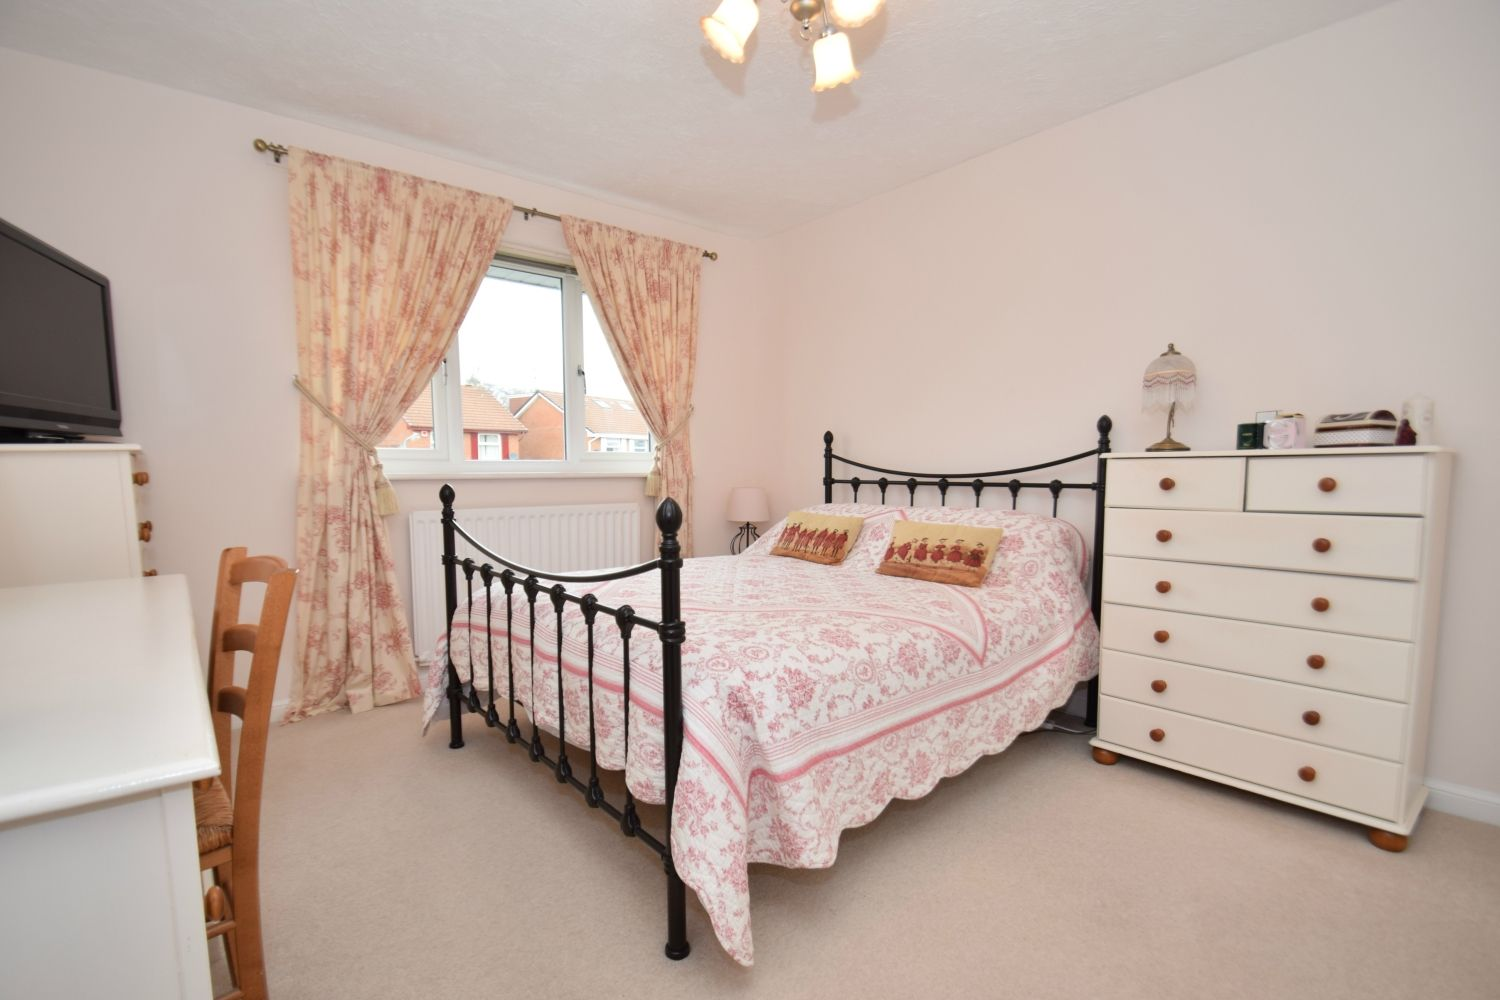 3 bed detached for sale in Foxes Close, Blackwell, B60  - Property Image 10